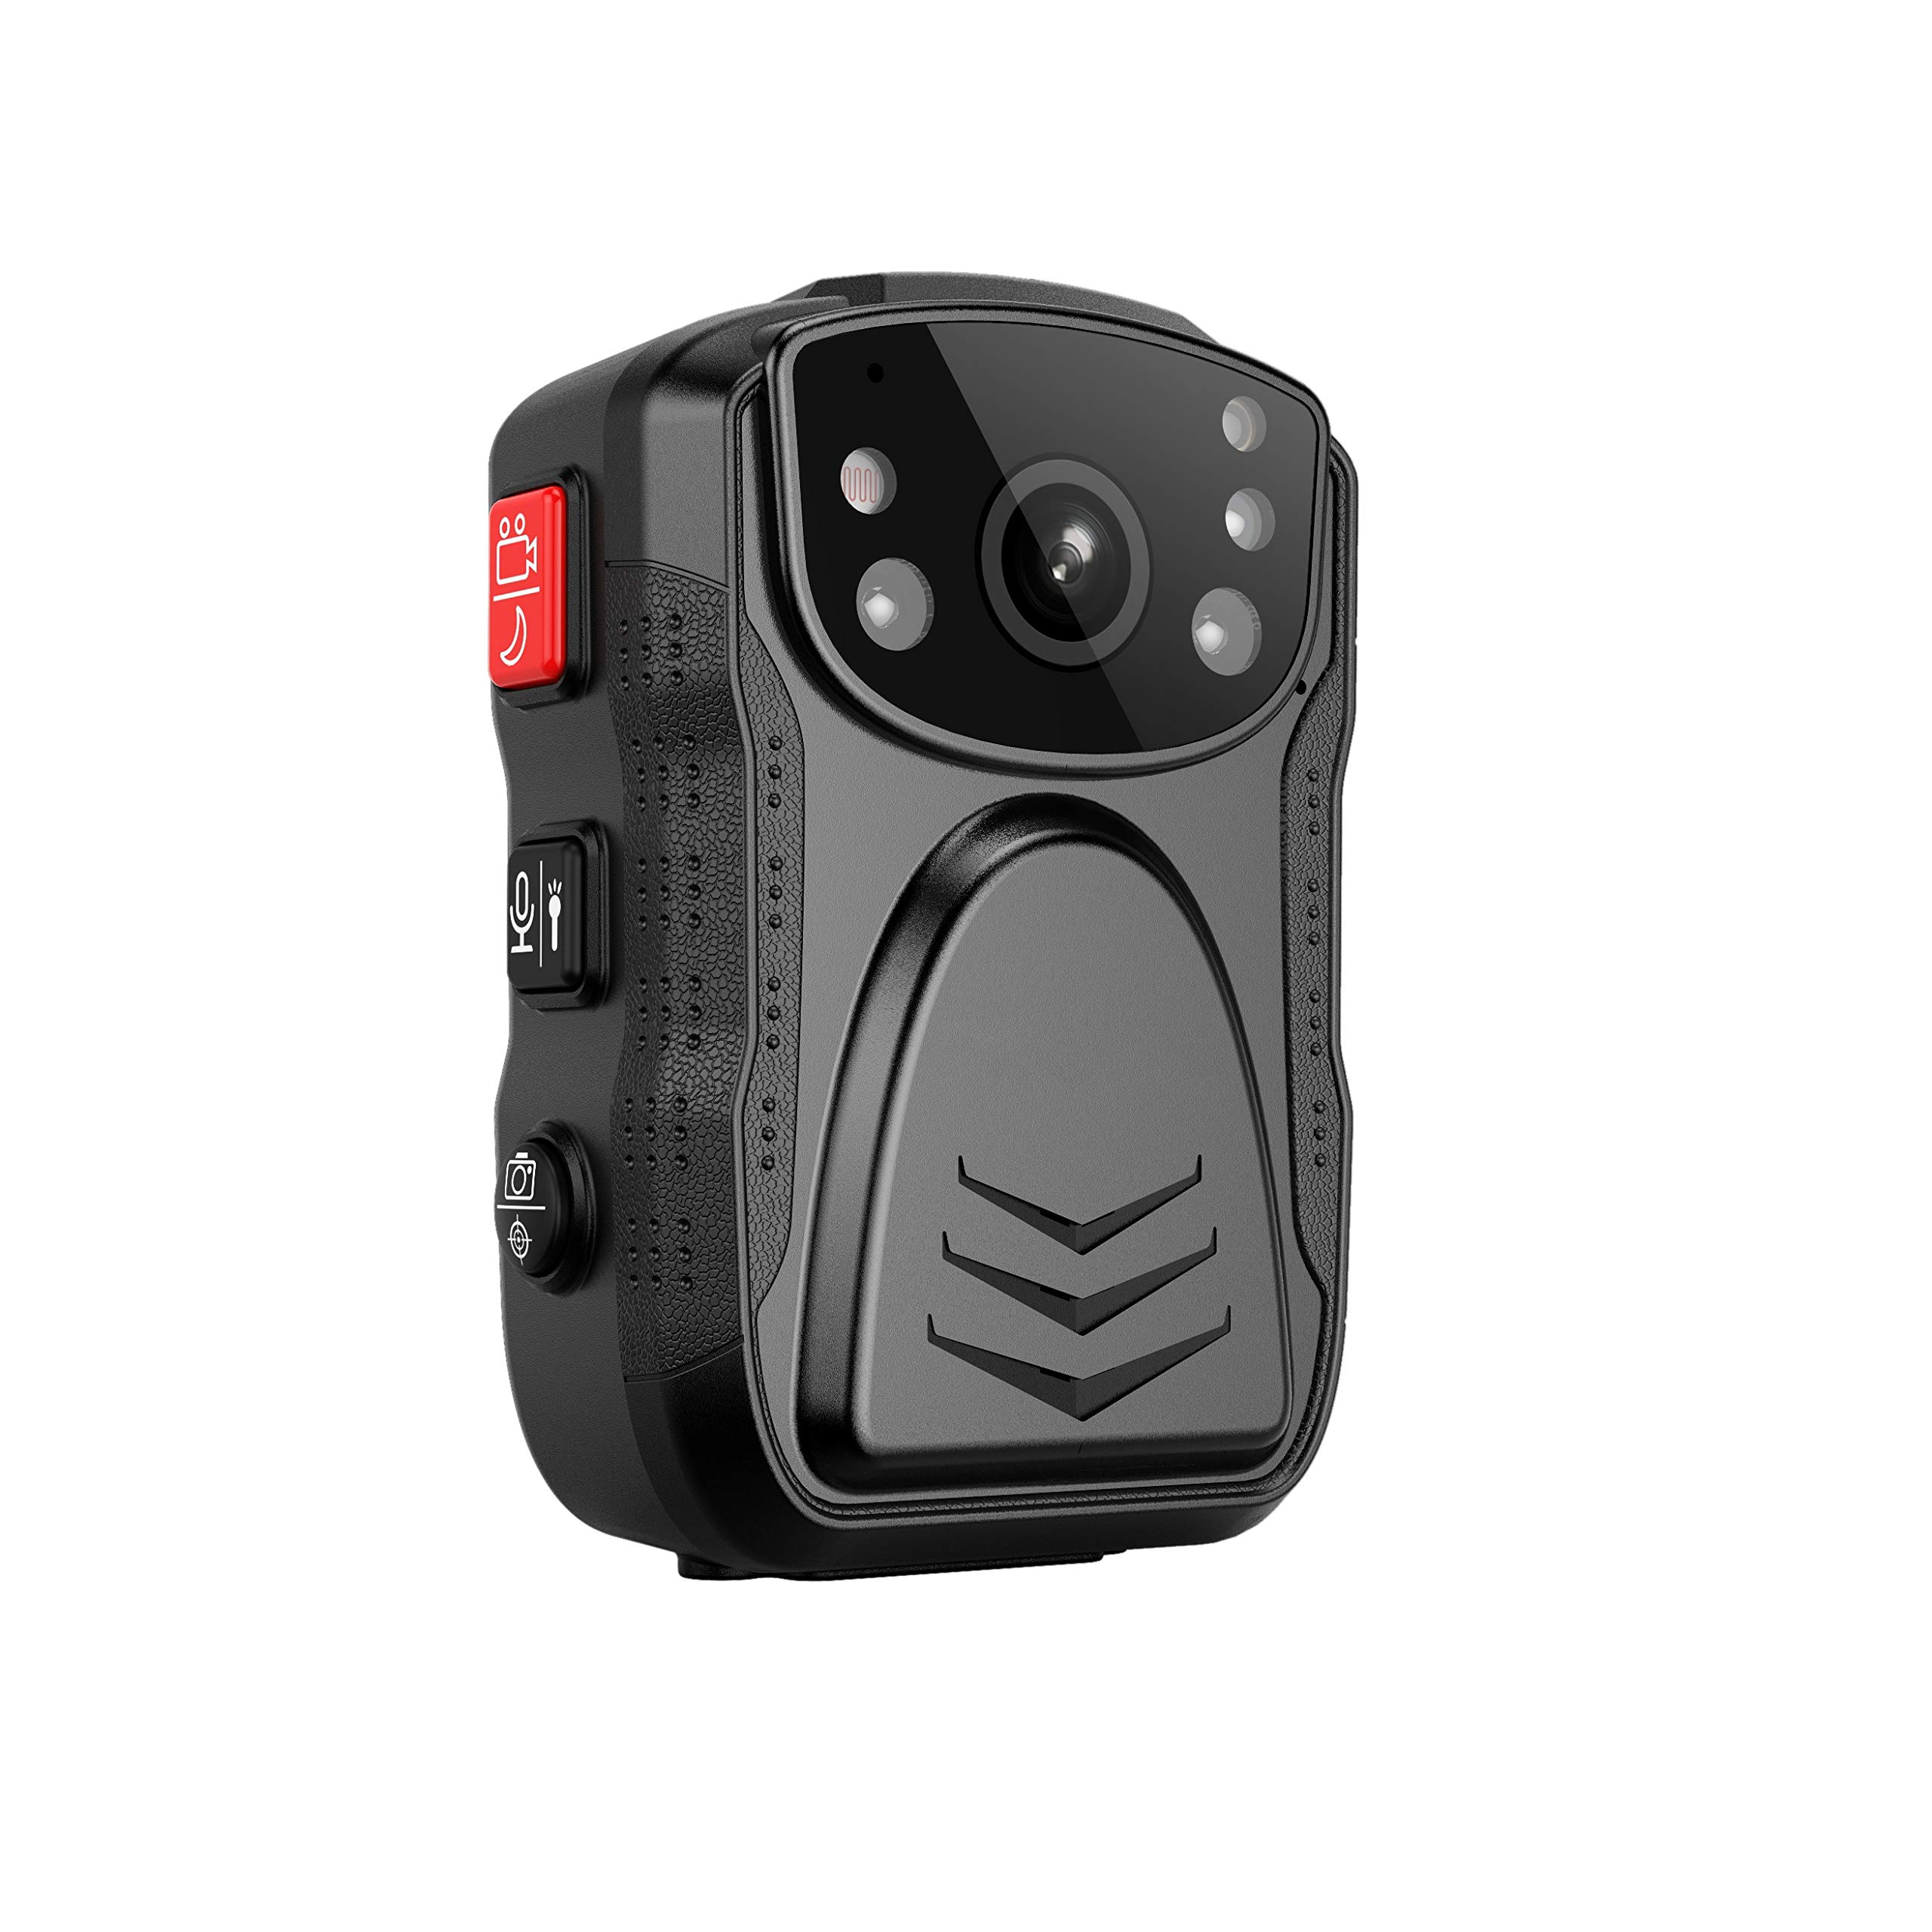 (Latest Gen)PatrolMaster 1296P UHD Body Camera with Audio (build-in 64GB), 2 Inch Display, Night Vision, Waterproof, Shockproof, Body Worn Camera with Compact Design, Police Camera for Law Enforcement by PatrolMaster